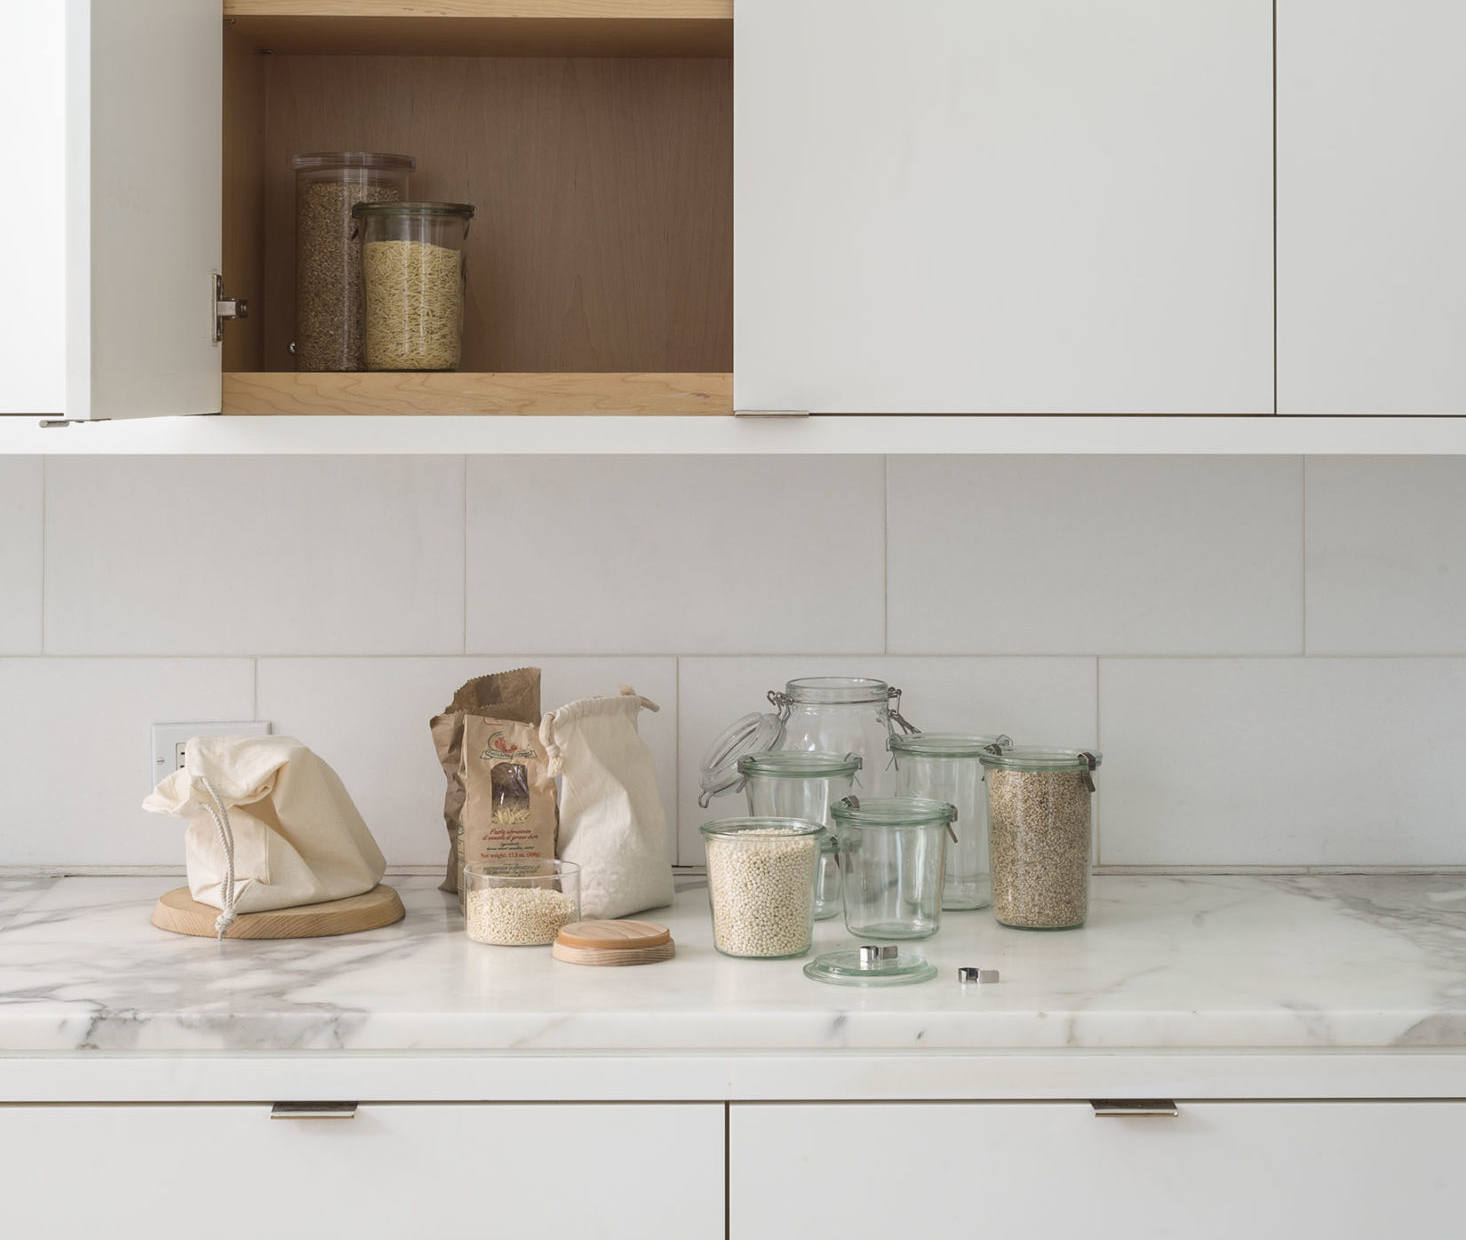 Trending on the Organized Home: Secrets to a Well-Lived Minimalist Life